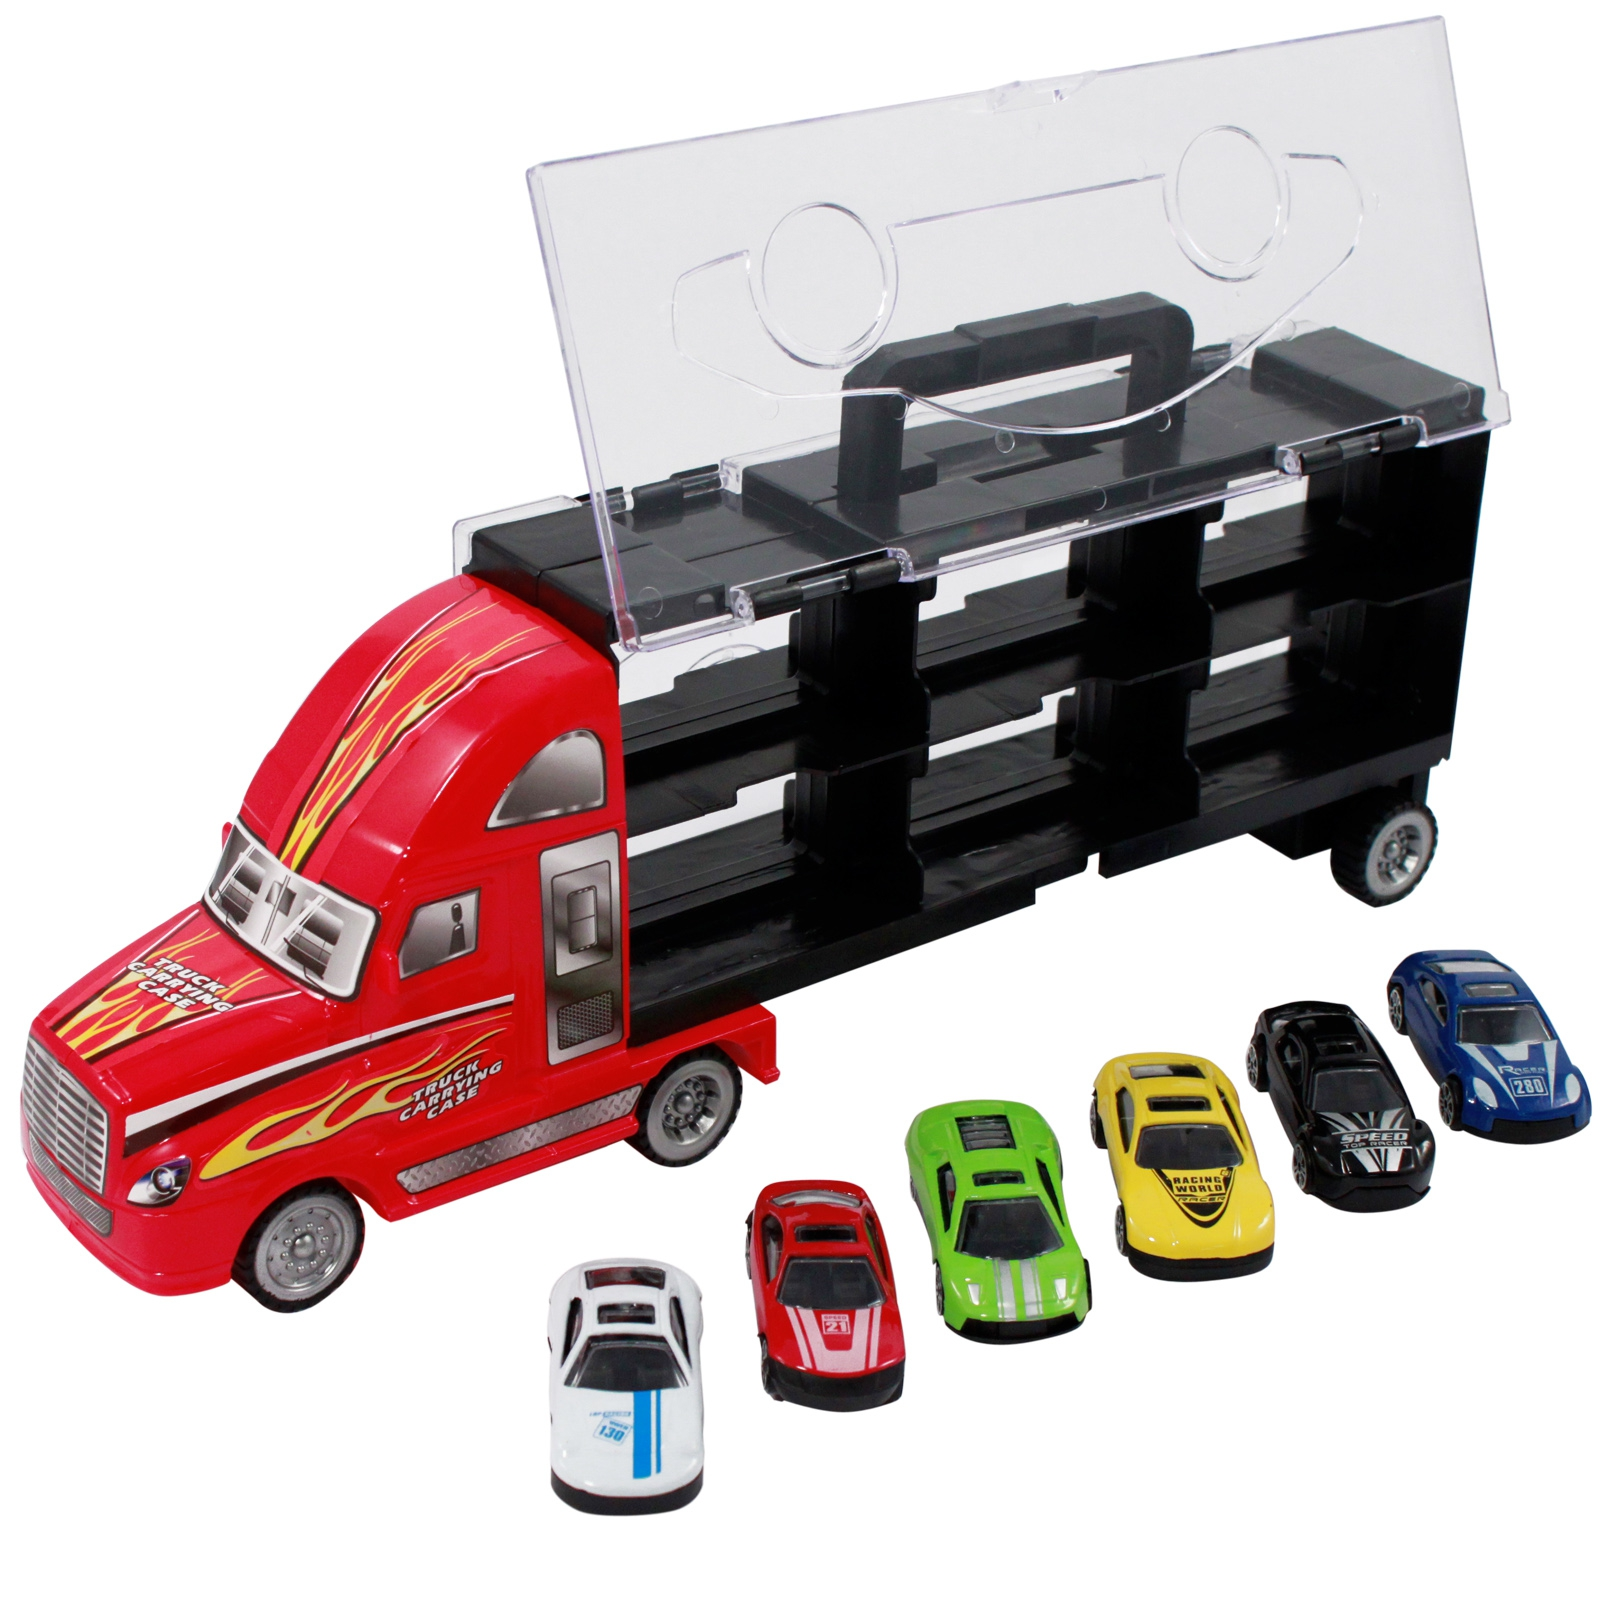 7pc Thunder Wheels Toy Semi Truck Diecast Race Car Carrier Set - Red